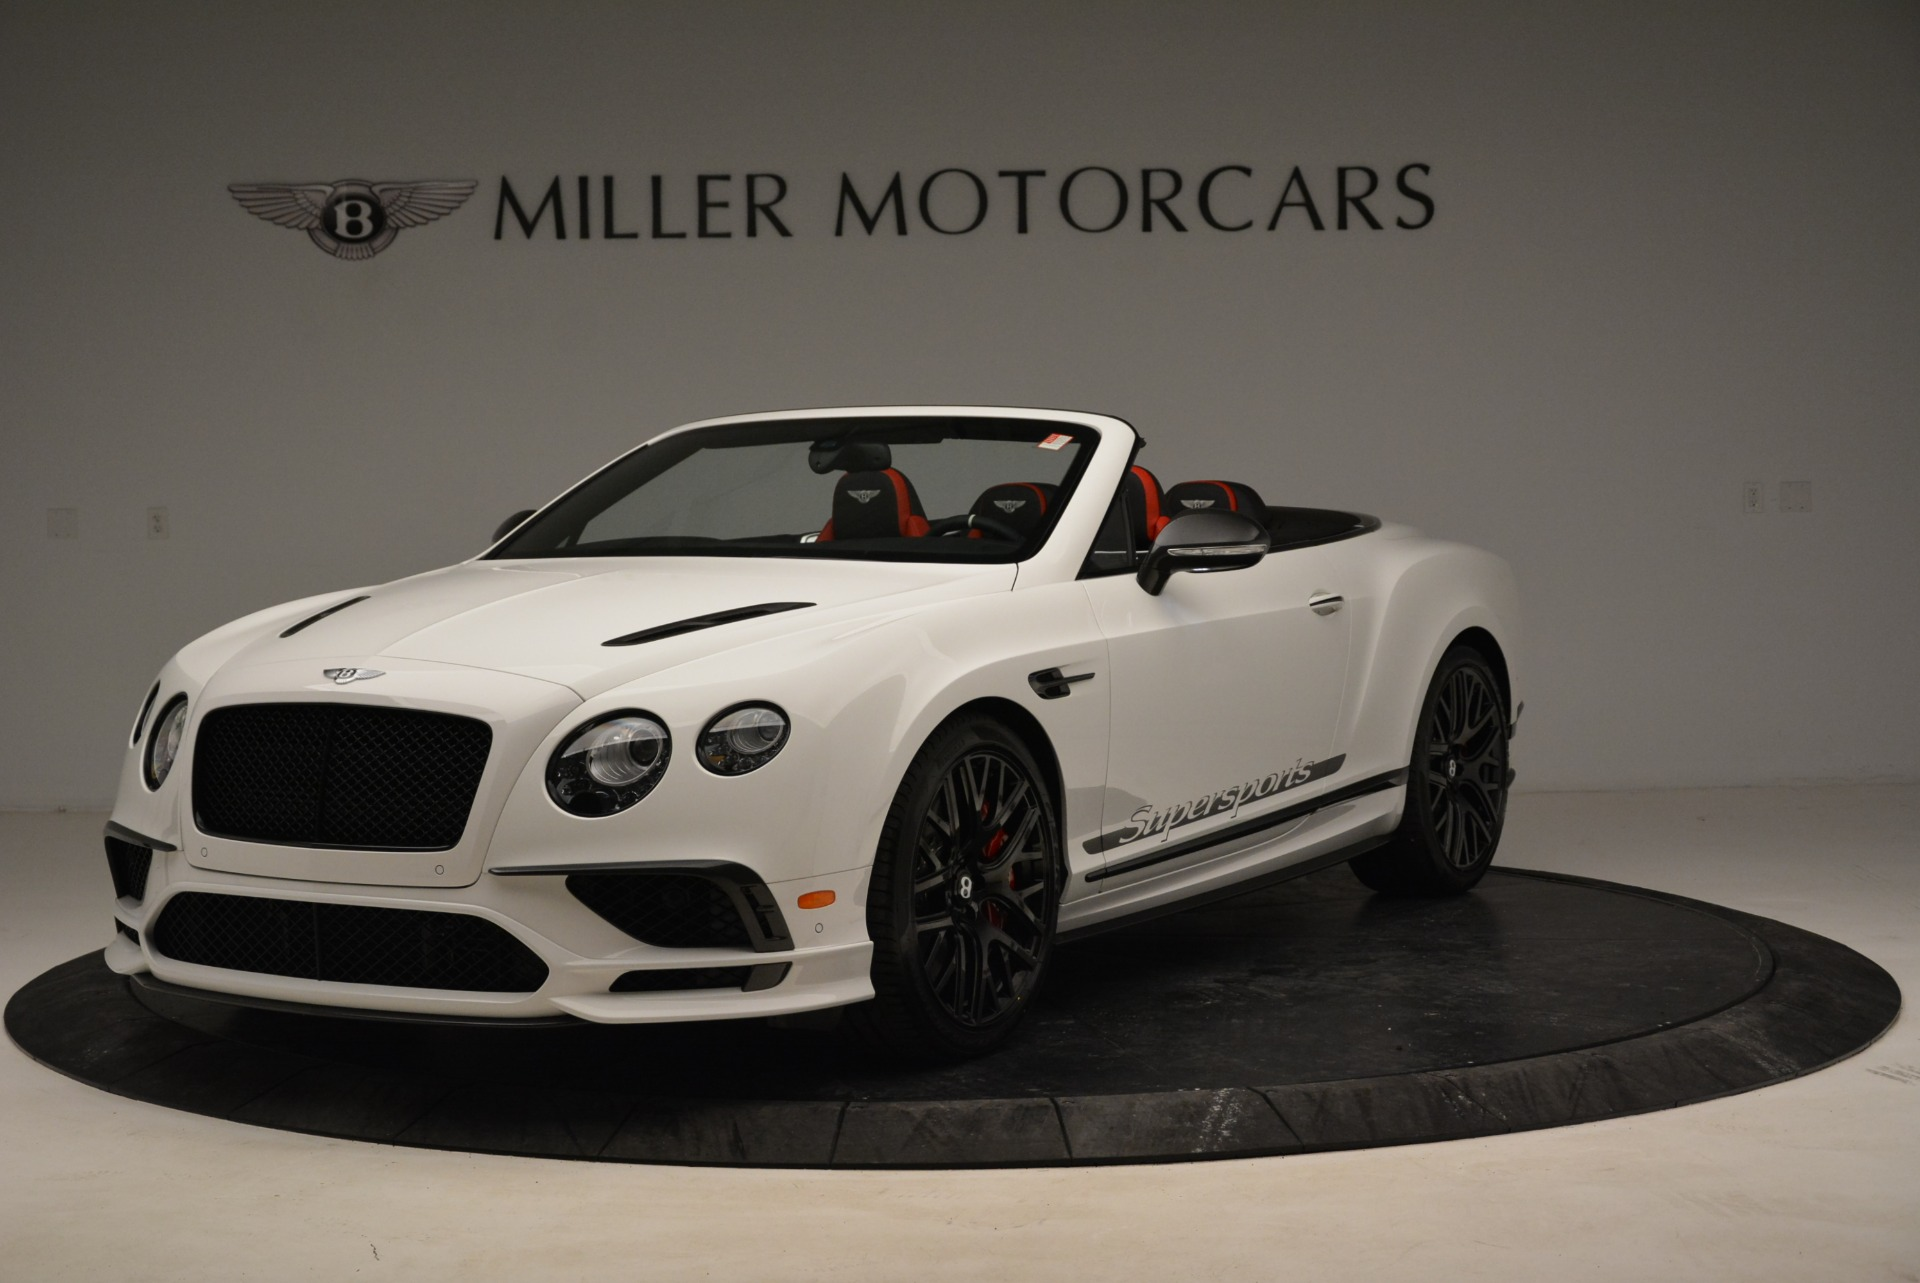 Used 2018 Bentley Continental GTC Supersports Convertible for sale $219,900 at Aston Martin of Greenwich in Greenwich CT 06830 1